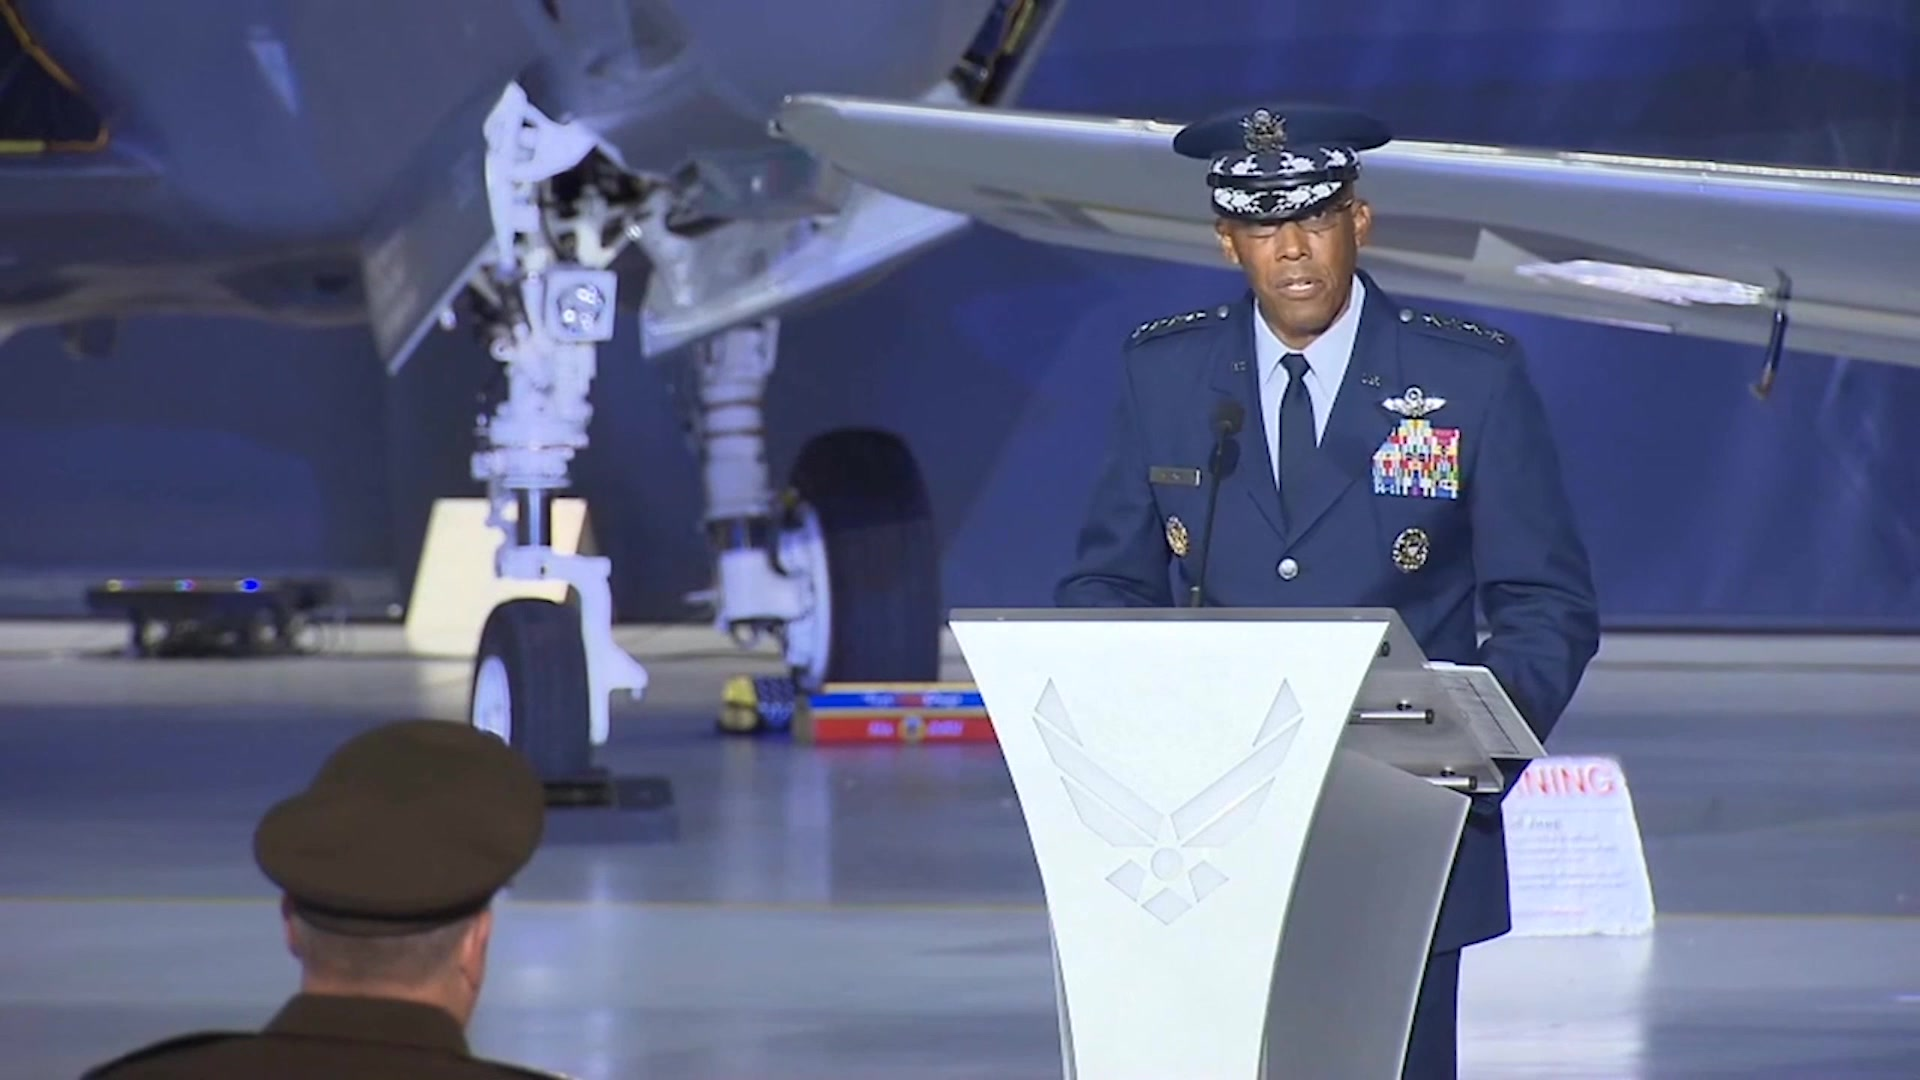 Today's look Around the Air Force highlights the change of command of the Chief of Staff of the Air Force as General Charles Brown assumes command.